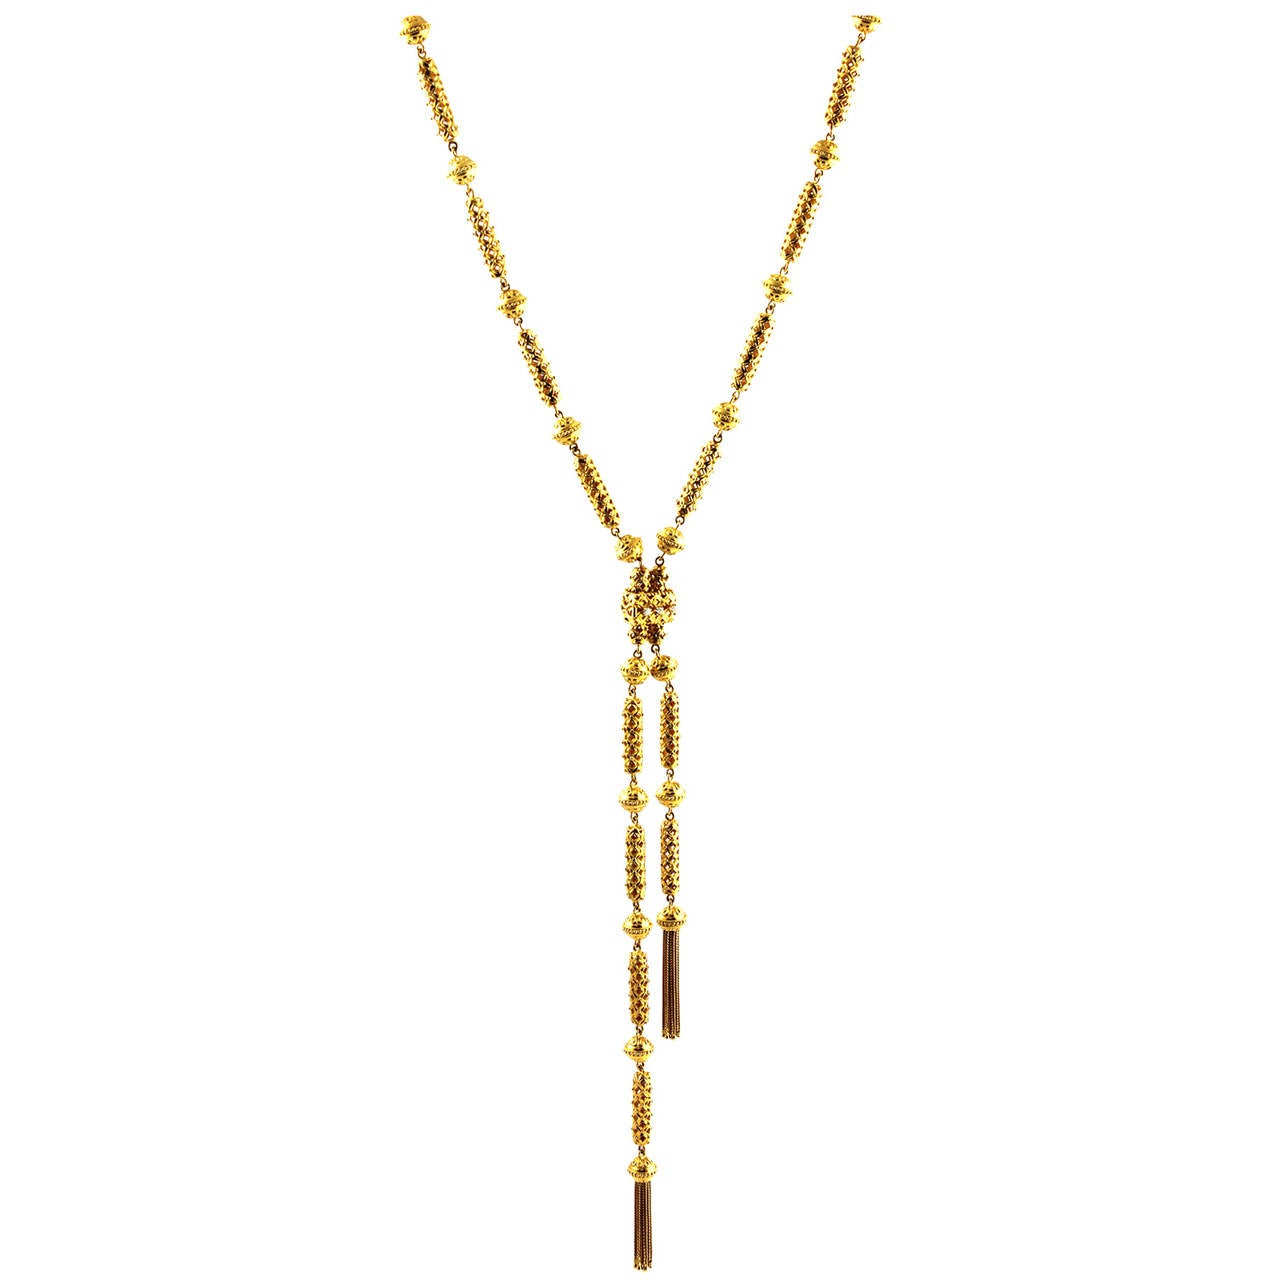 Diamond Gold Lariat Style Necklace with Tassels at 1stdibs